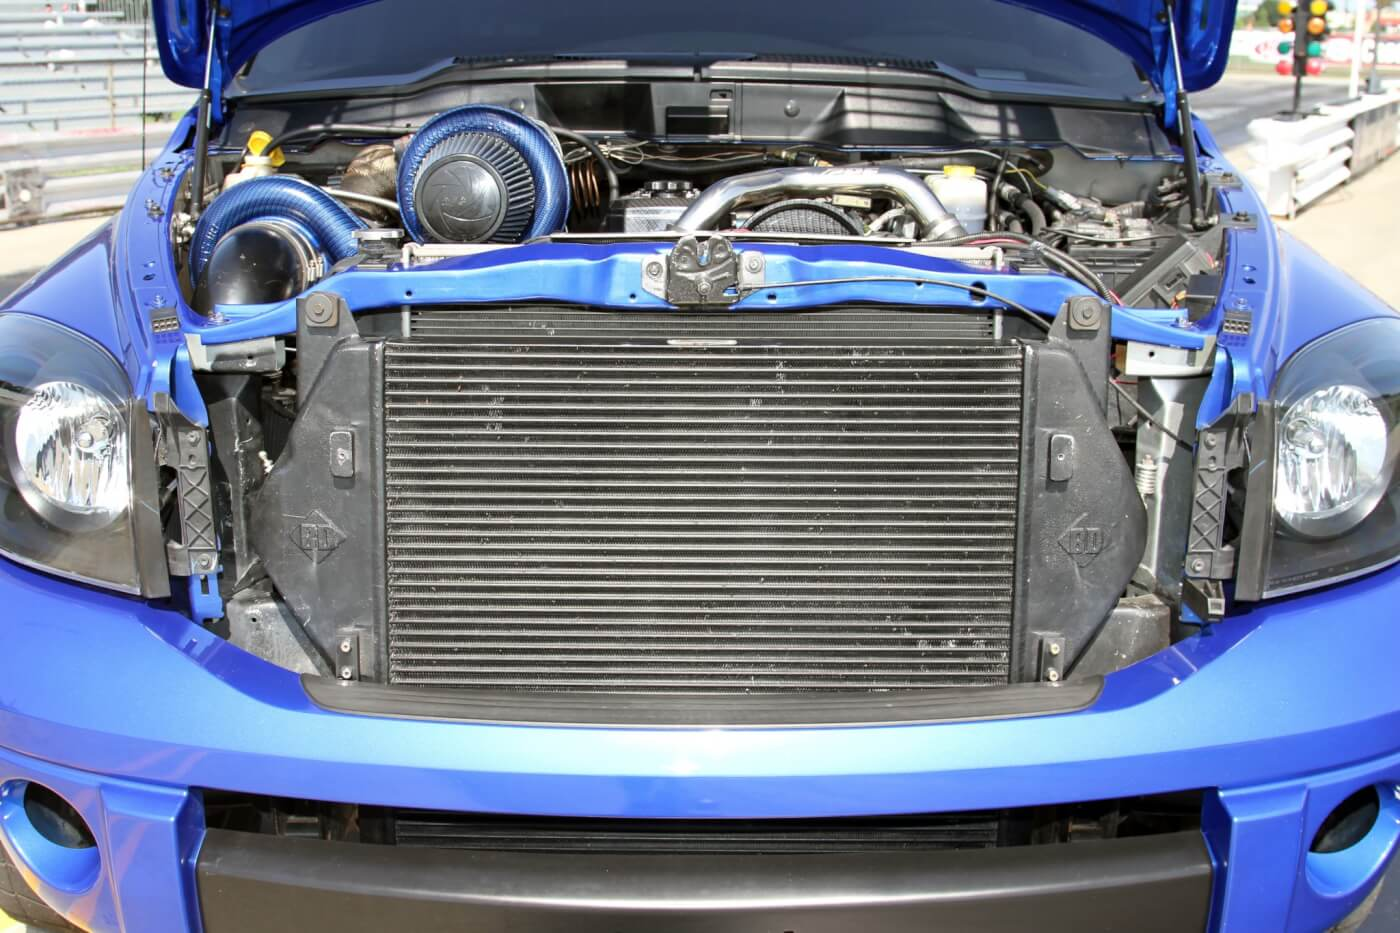 A BD Diesel intercooler is used to cool the intake charge after the three turbos build boost.